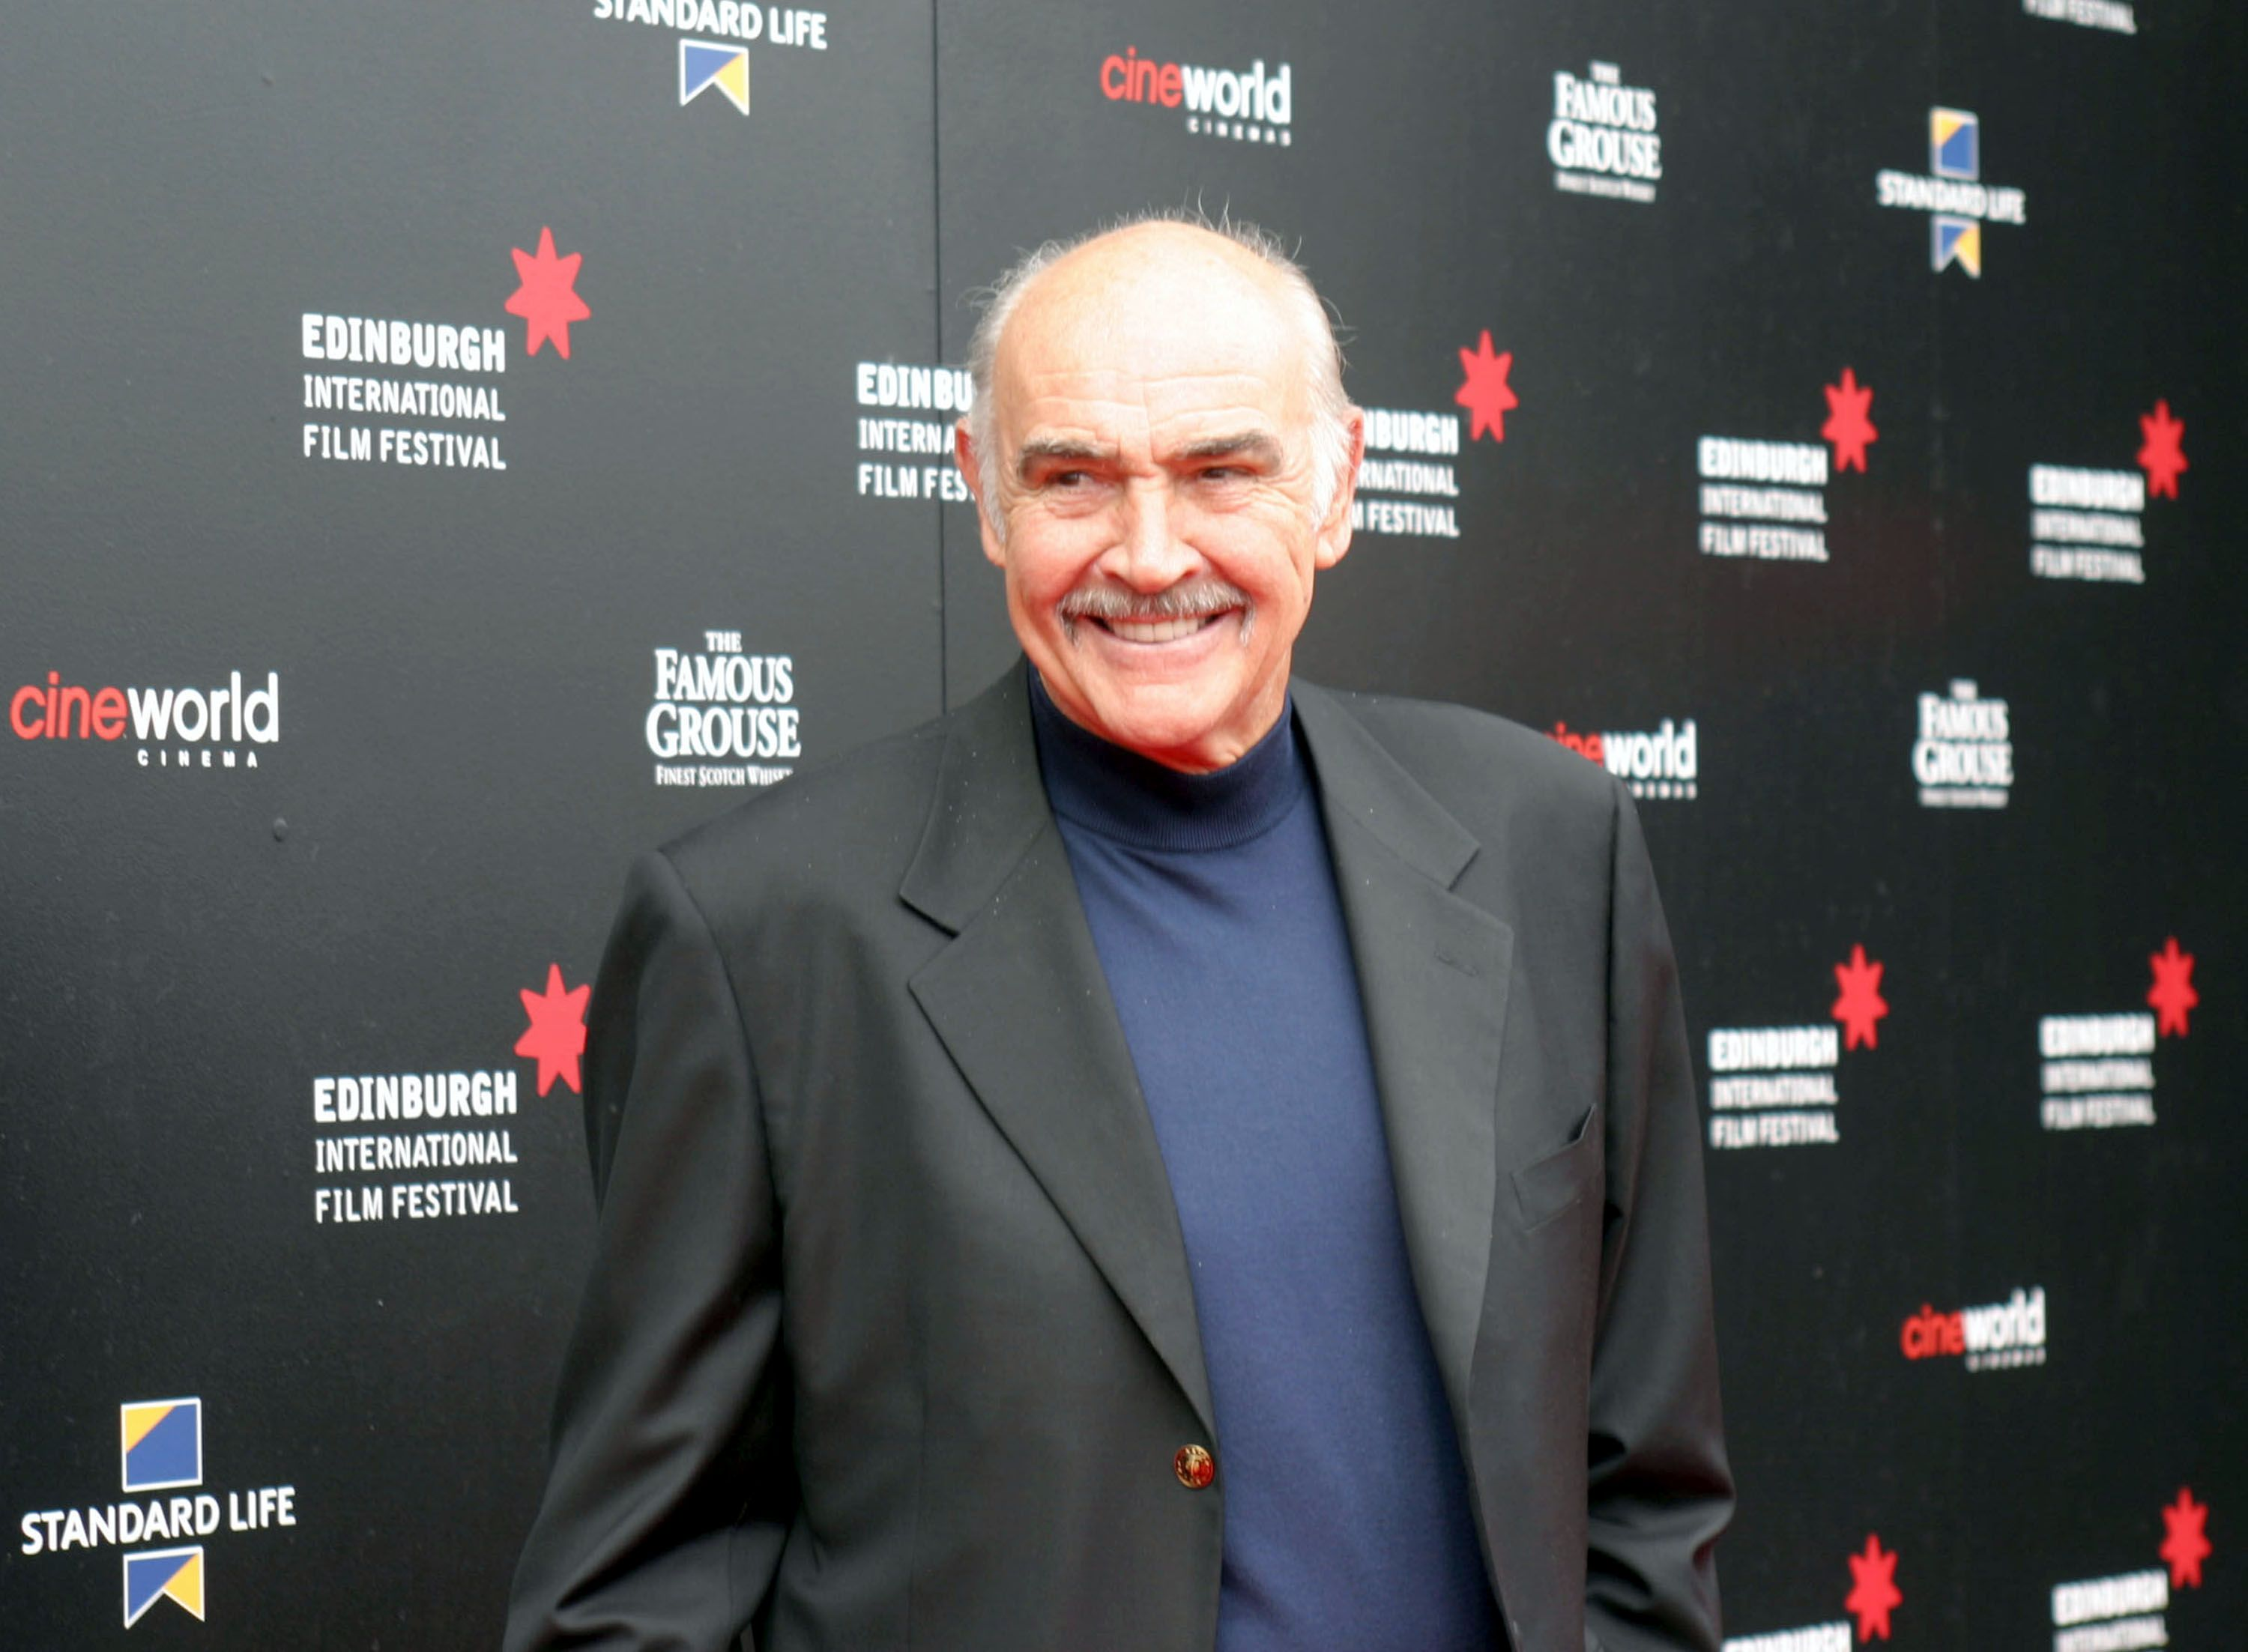 Sir Sean Connery at the Edinburgh International Film Festival at Cineworld on August 25, 2006 | Photo: Getty Images